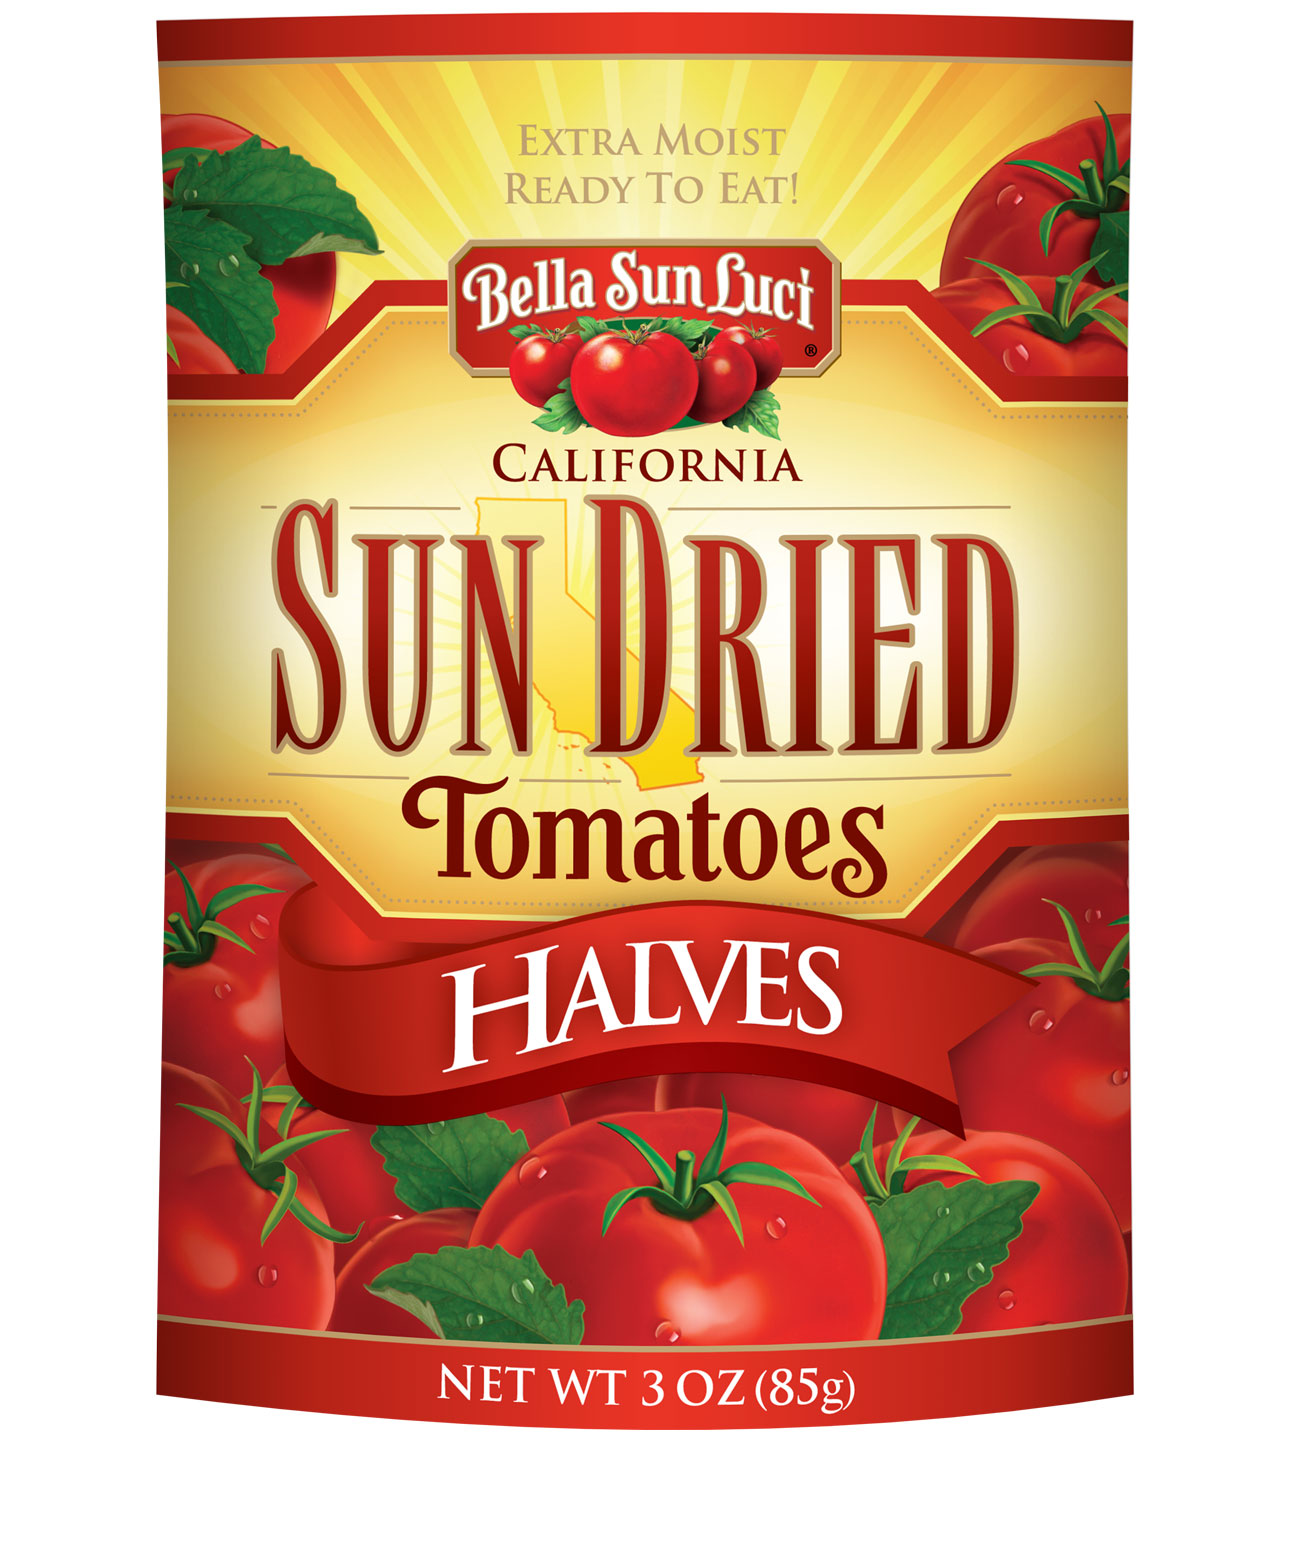 Sun Dried Tomatoes: Halves (Resealable Pouch)